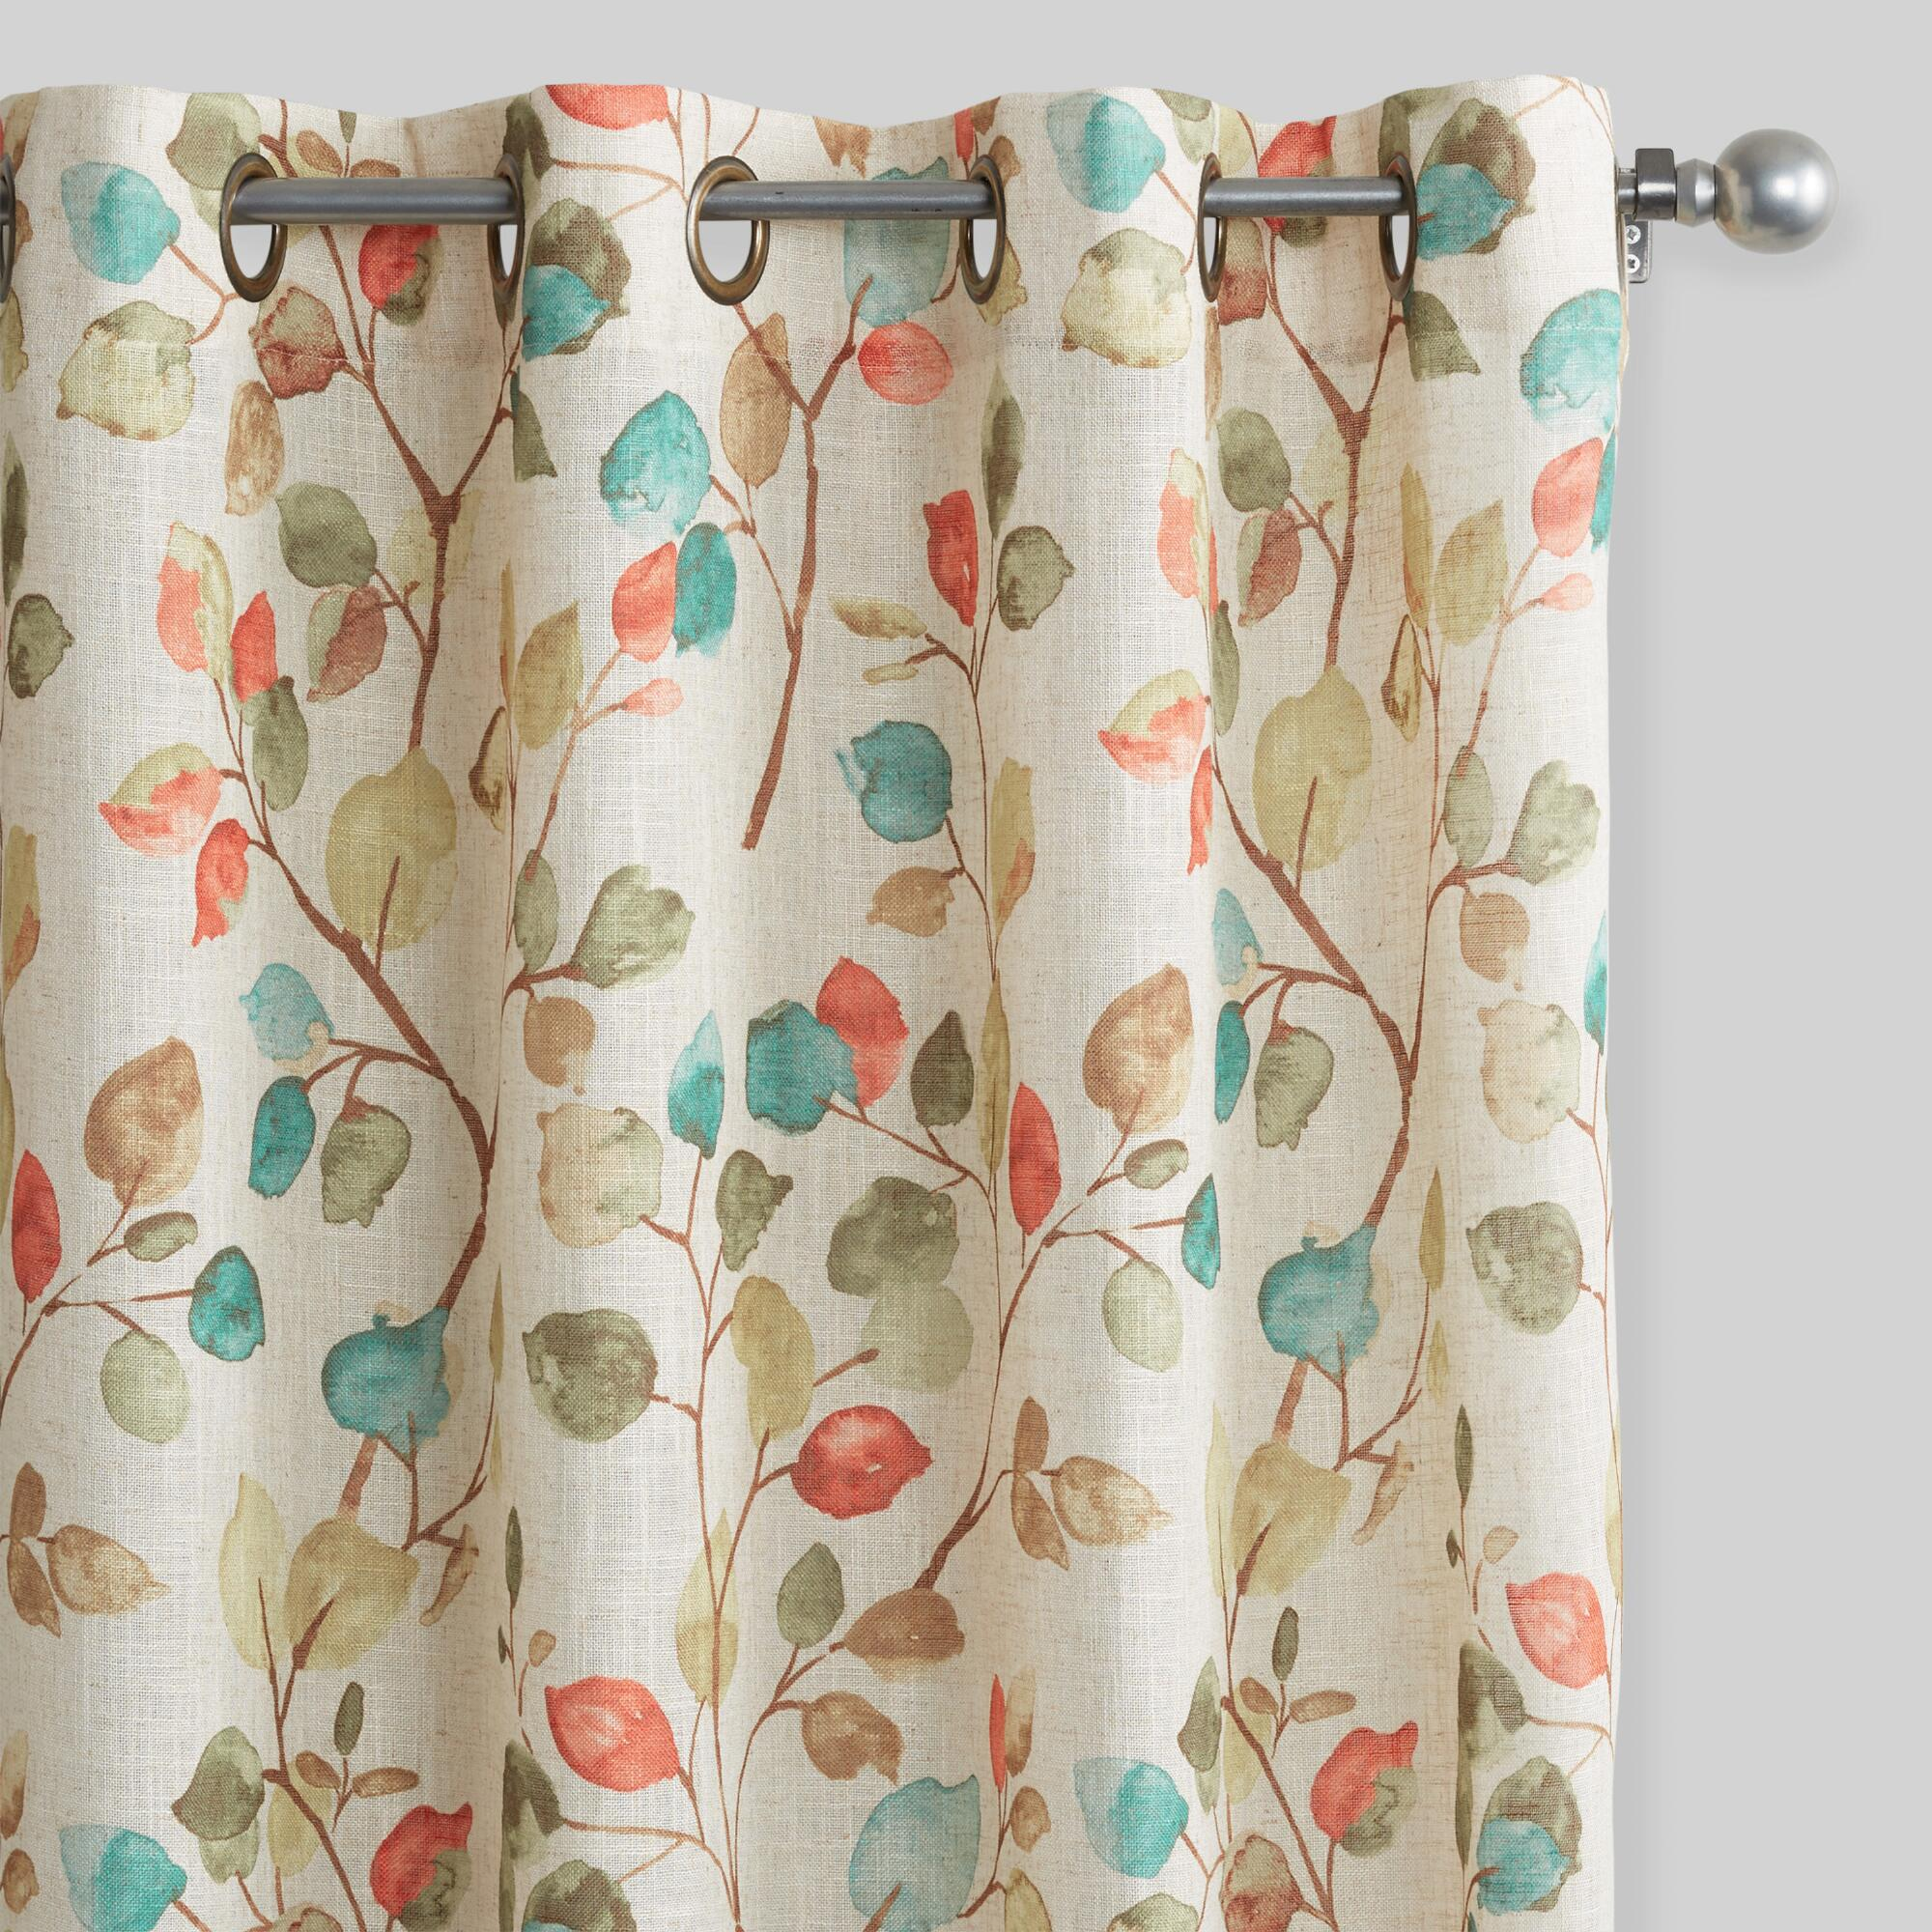 fruitesborras bath best trends shower curtain for in up top bathroom curtains decor stand home